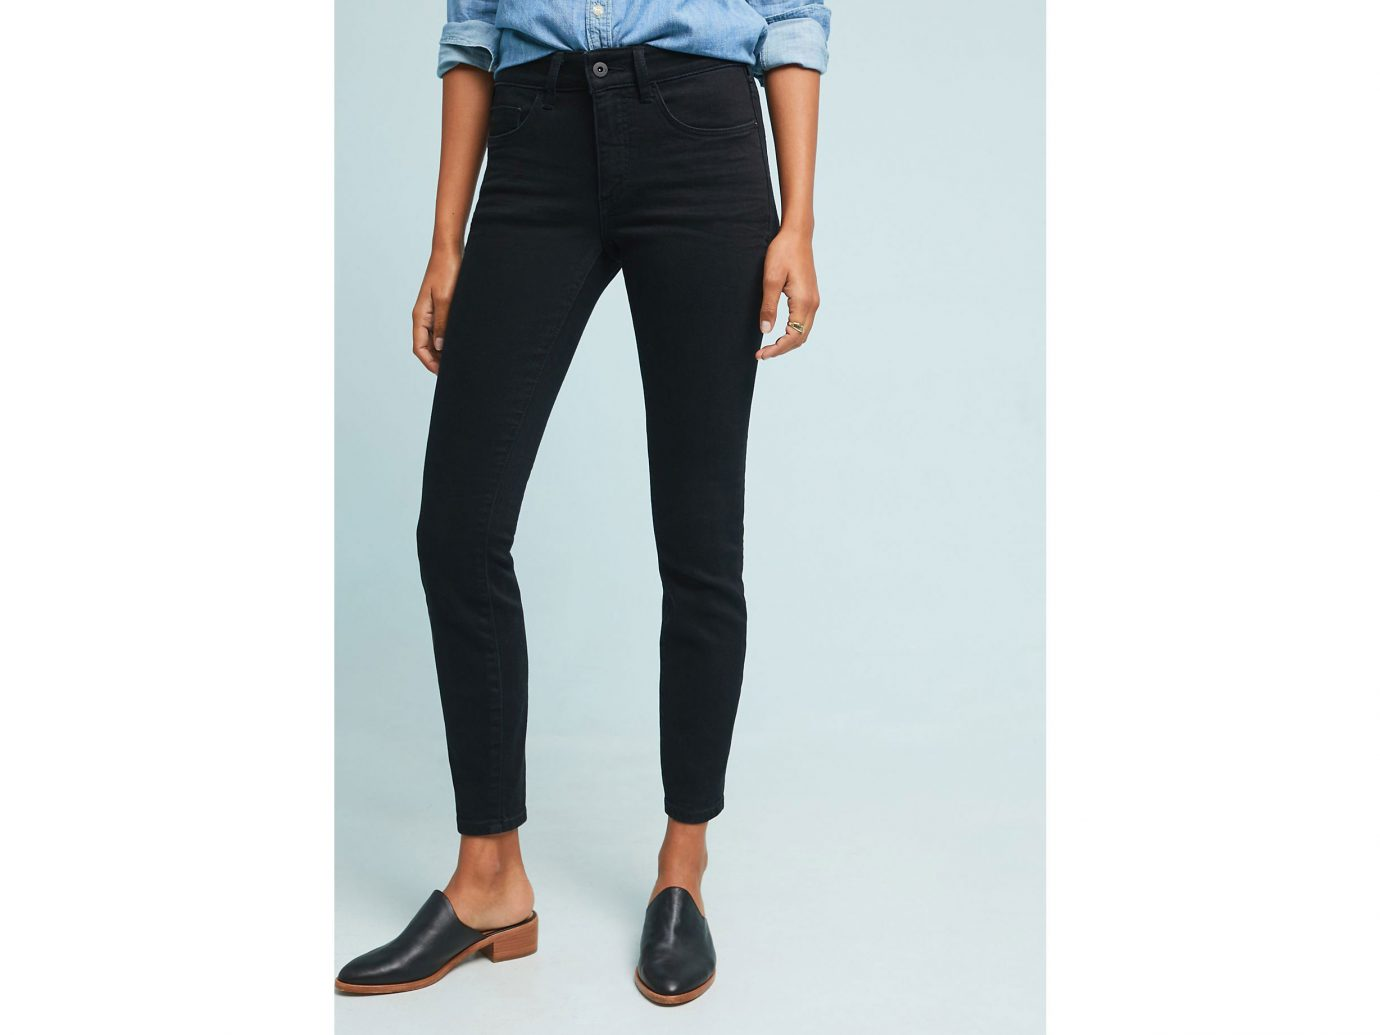 Pilcro High-Rise Skinny Jeans